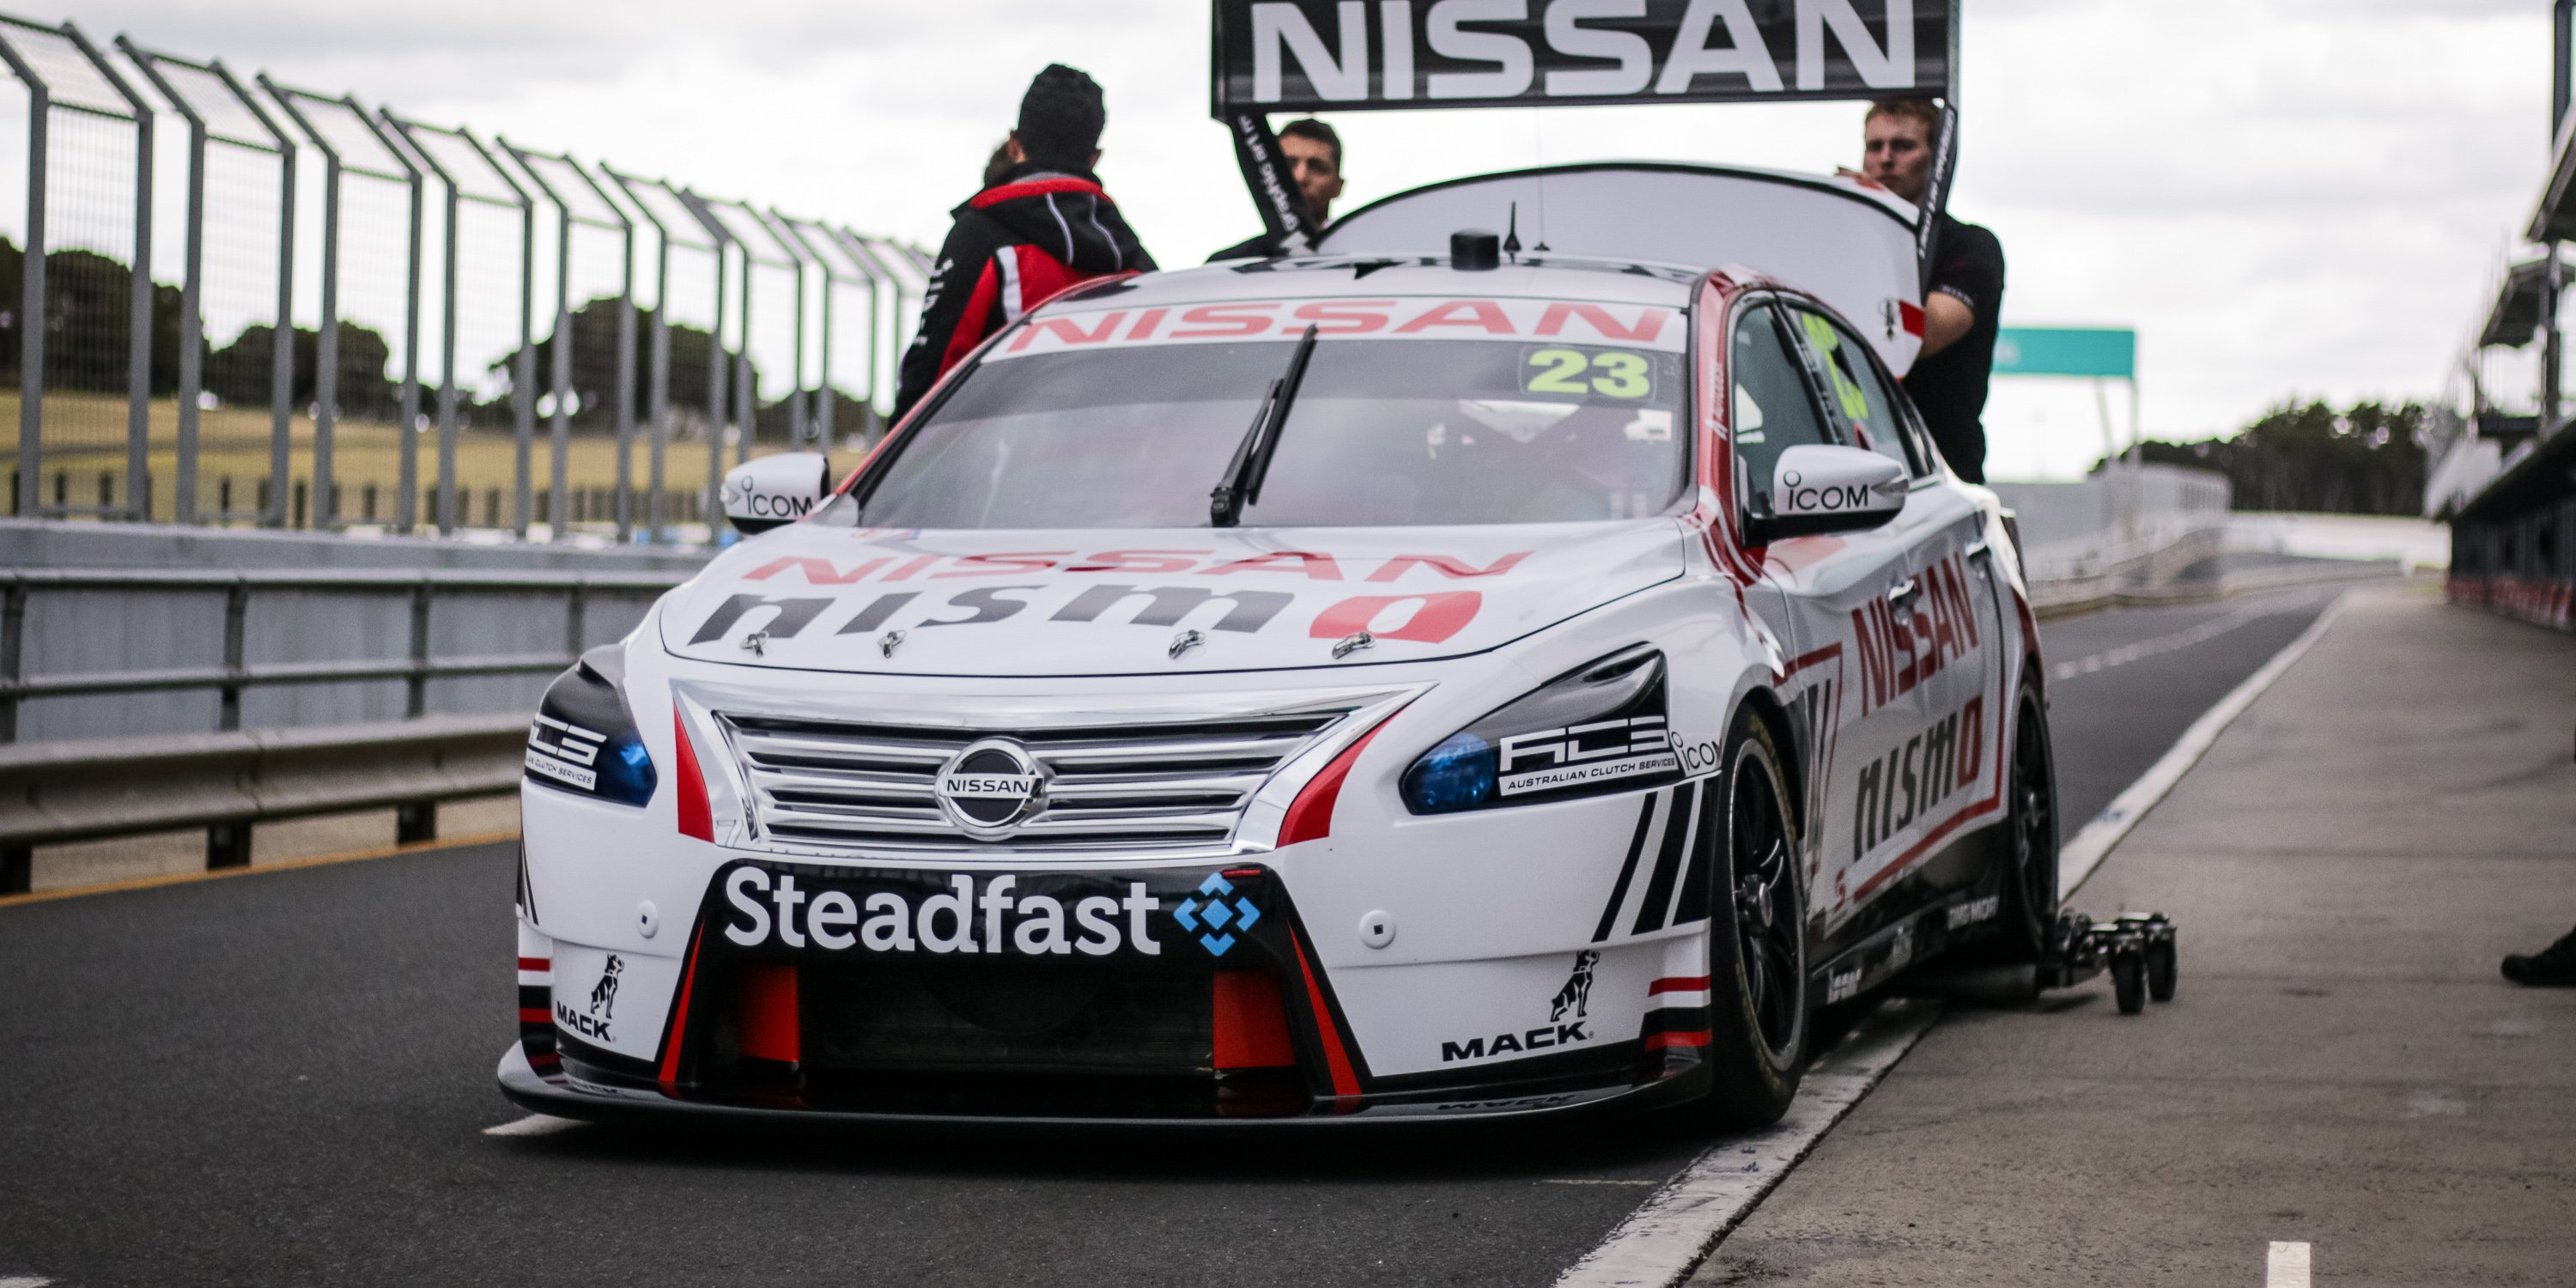 Nissan not in V8 Supercars to sell Altima, racing fans ...